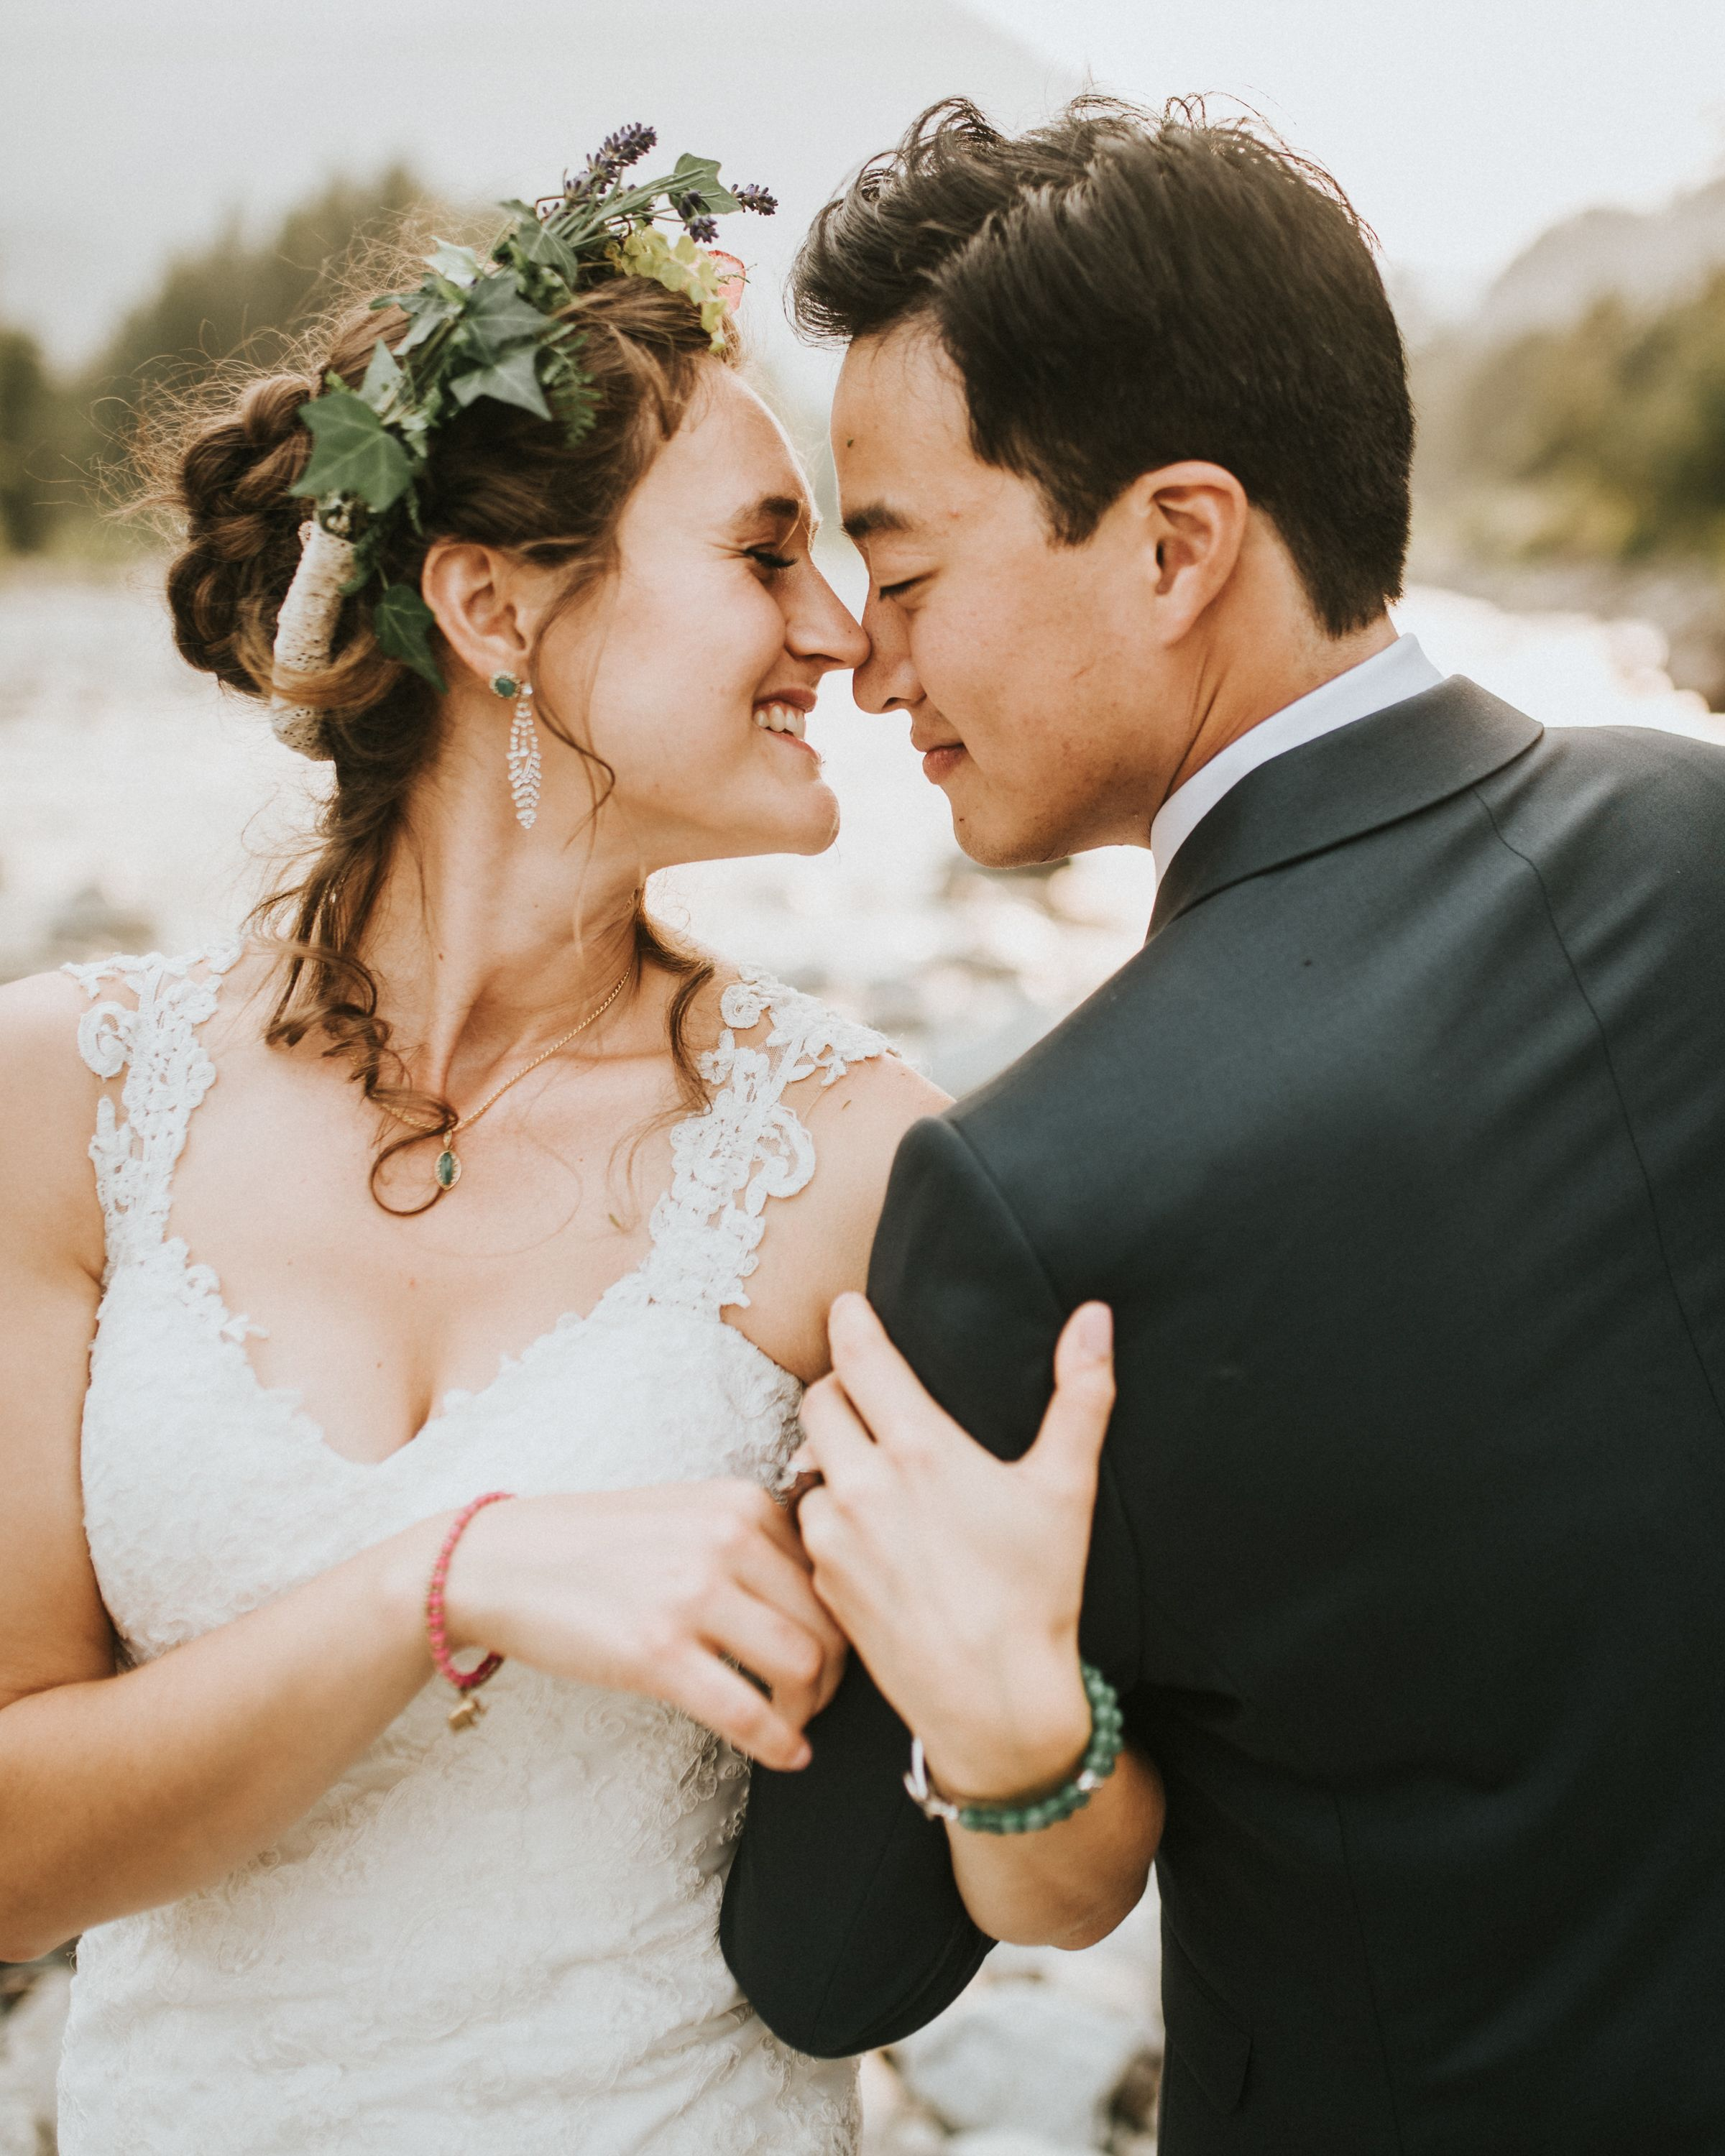 Song For Bridesmaids To Walk Down The Aisle To: Pin By Outdoor Adventures Center On River House Weddings